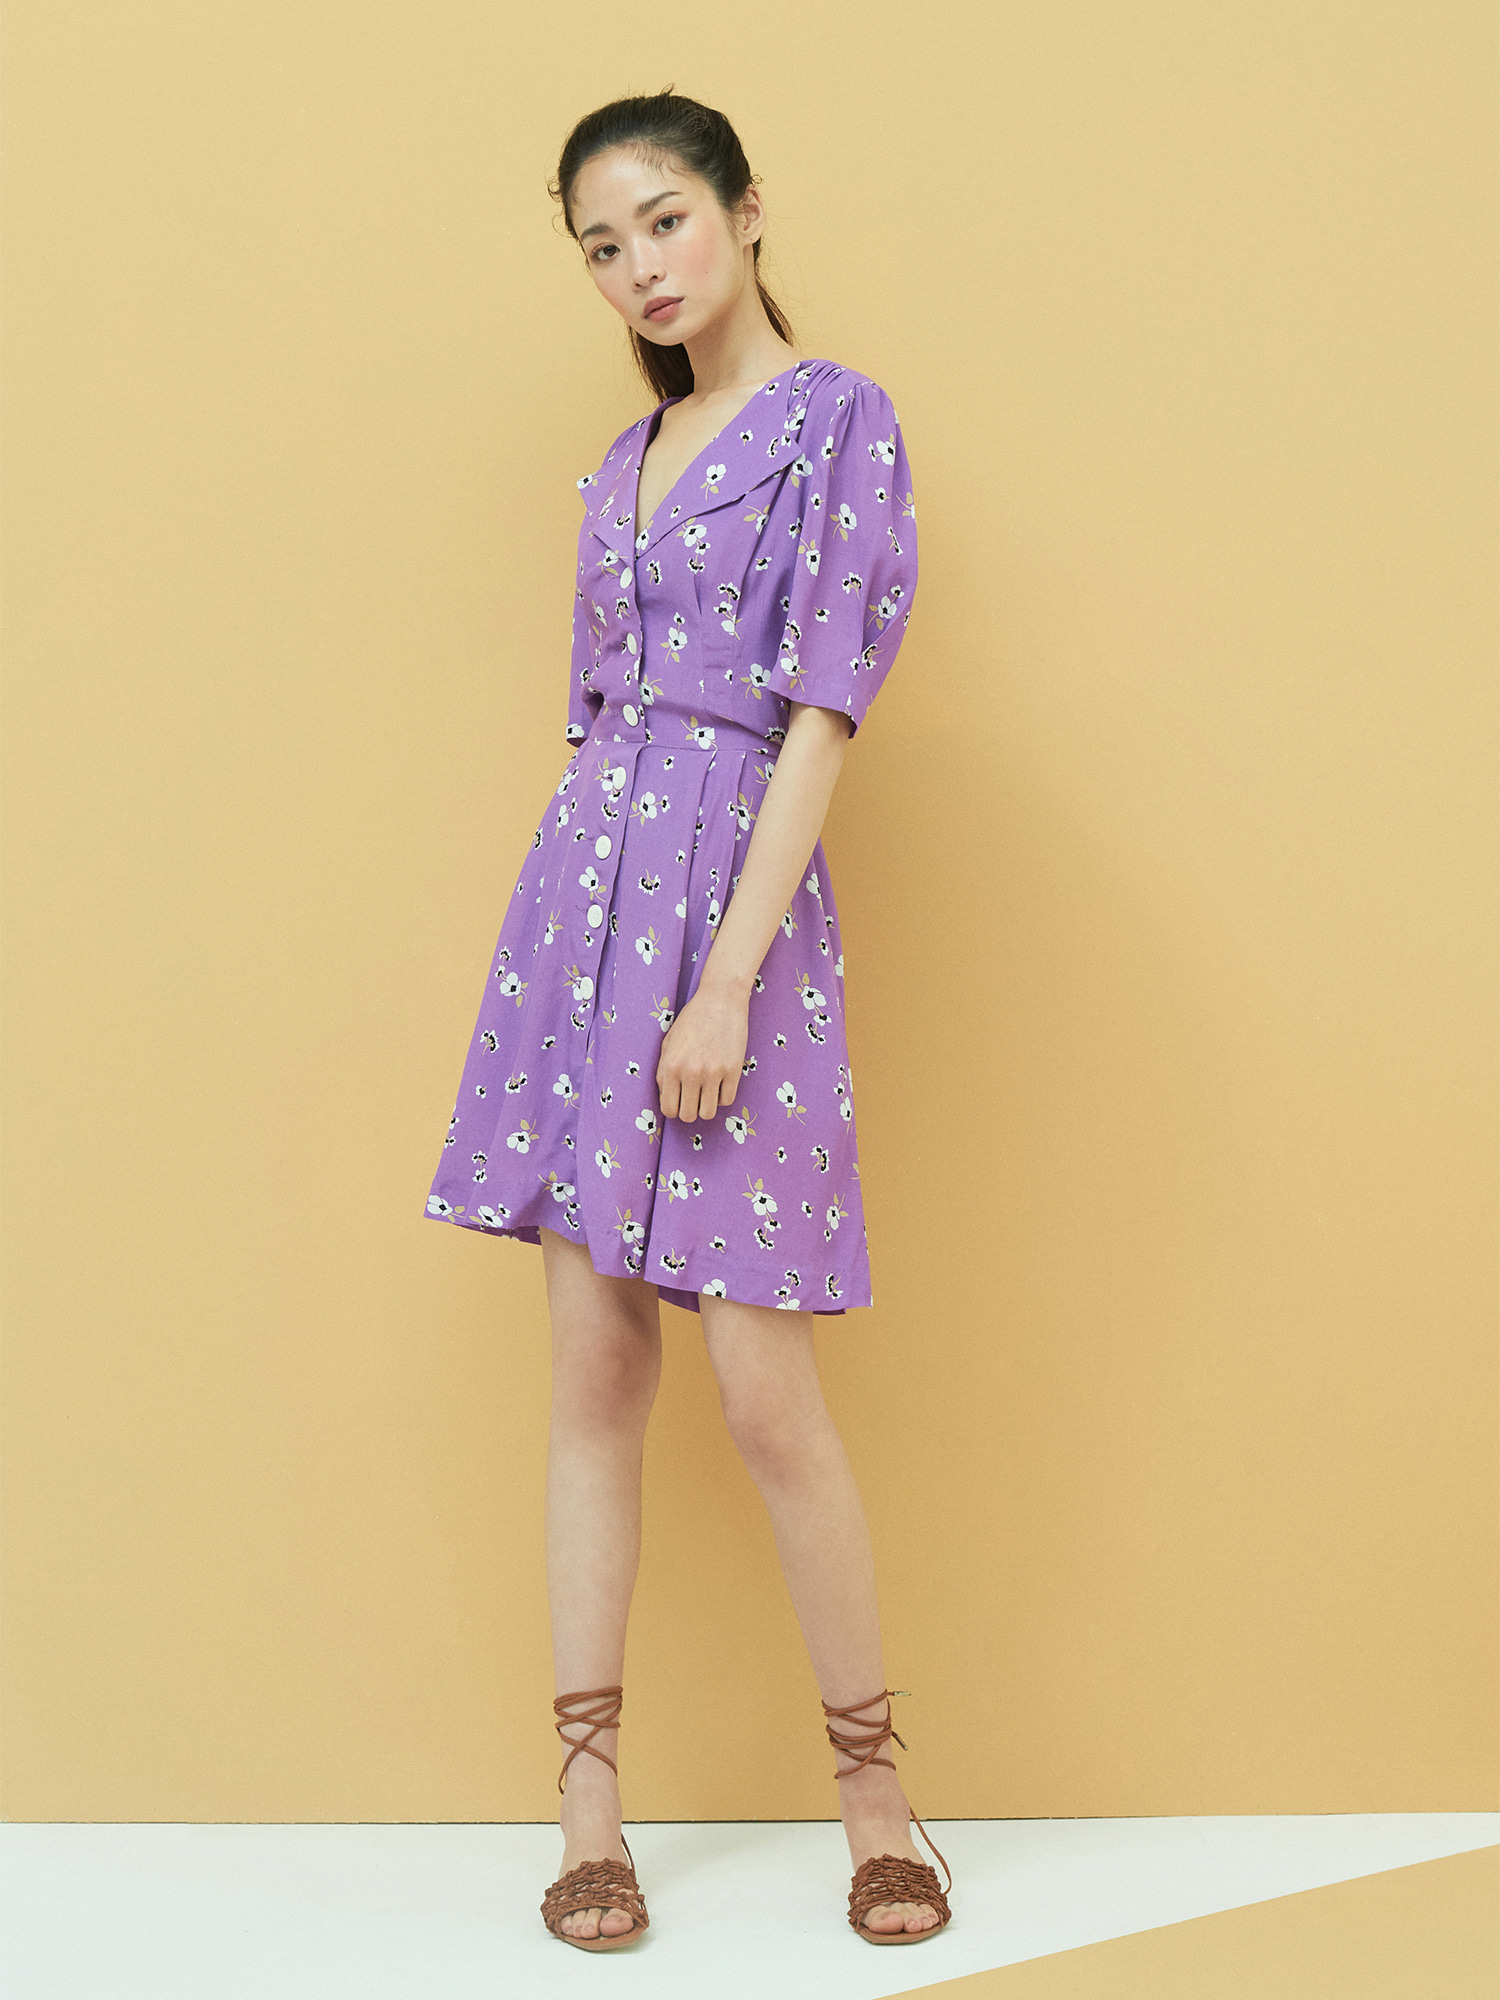 [Wconcept Exclusive] Floral Button Dress in Purple